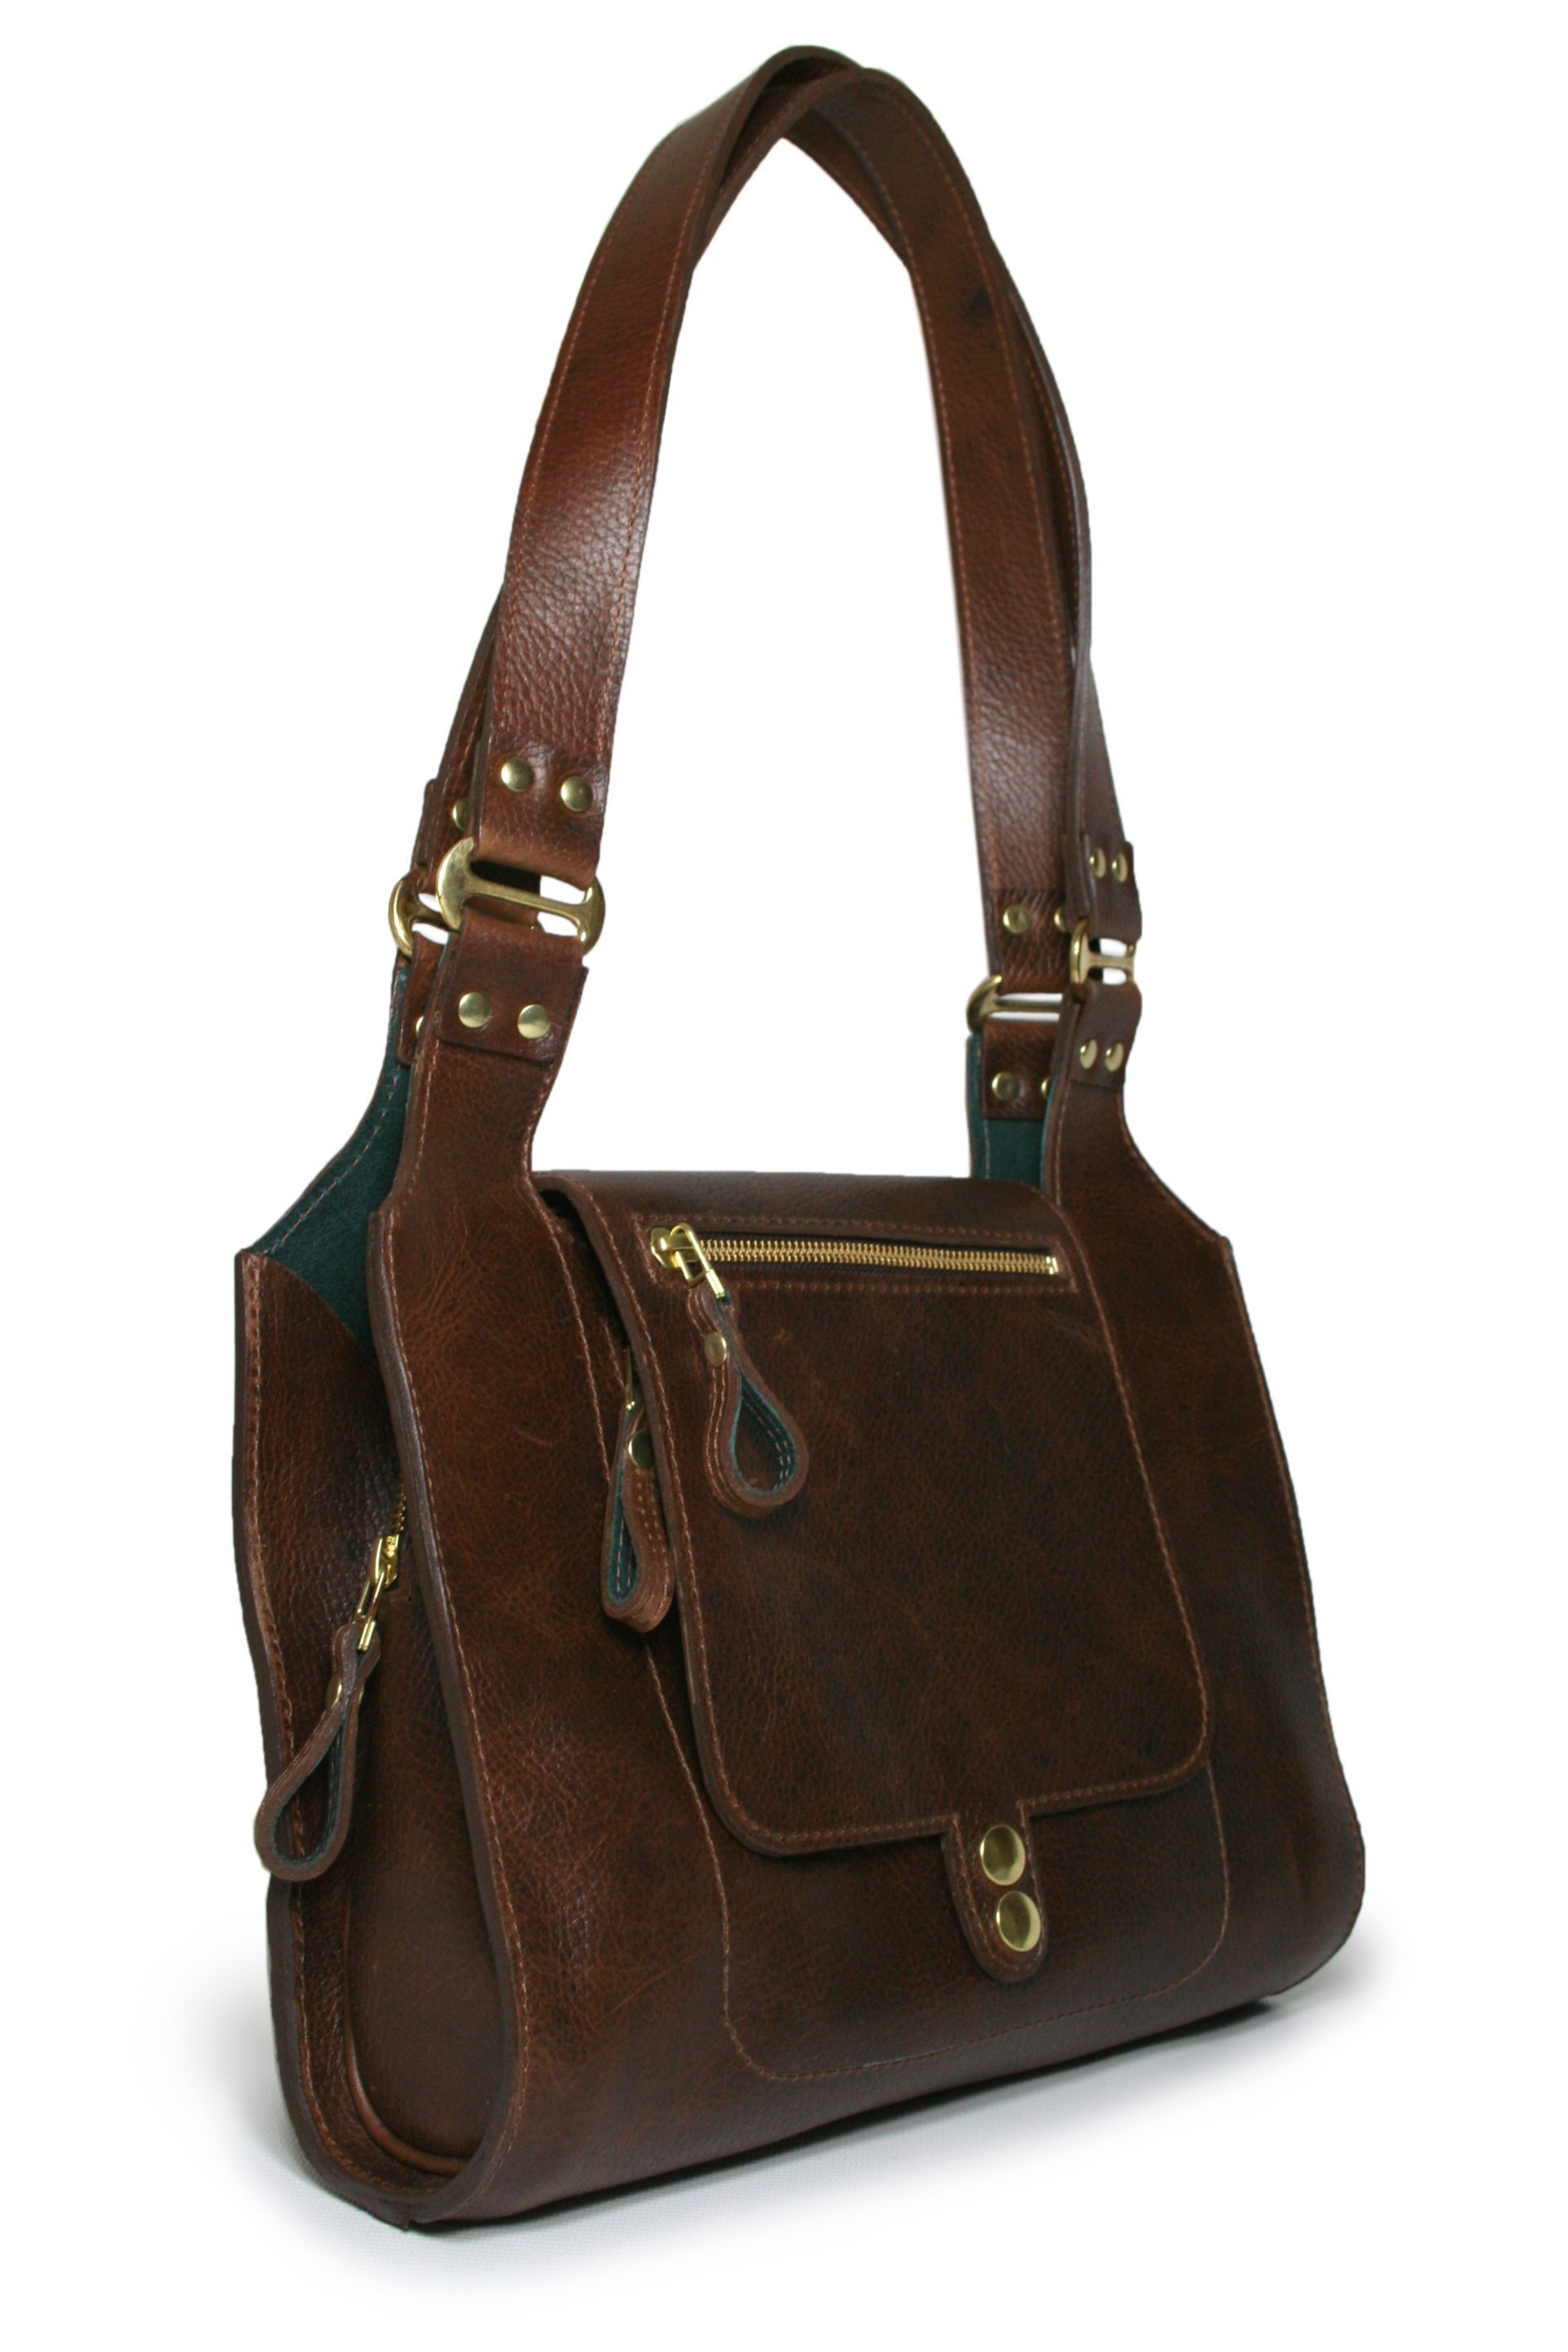 Carractacus bag